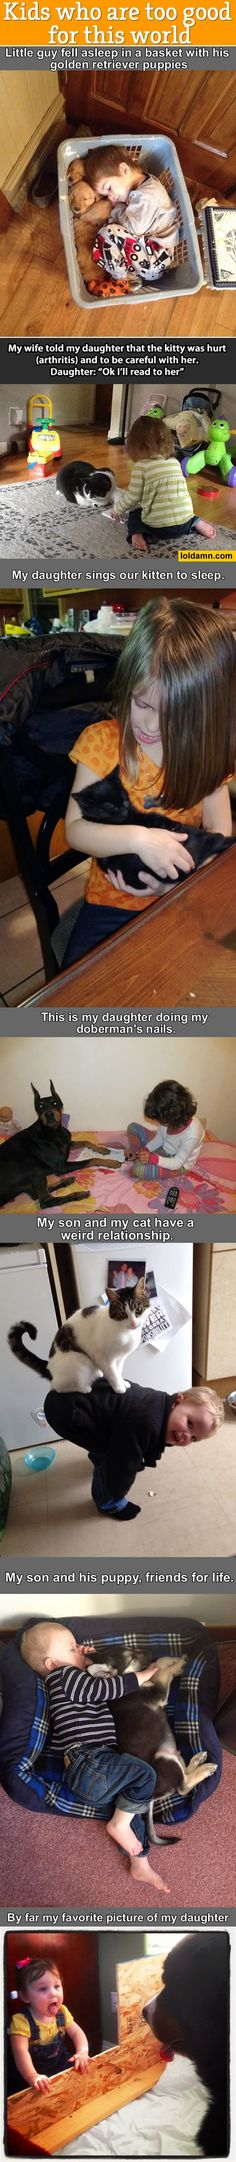 So adorable!  Every child definitely needs a pet.